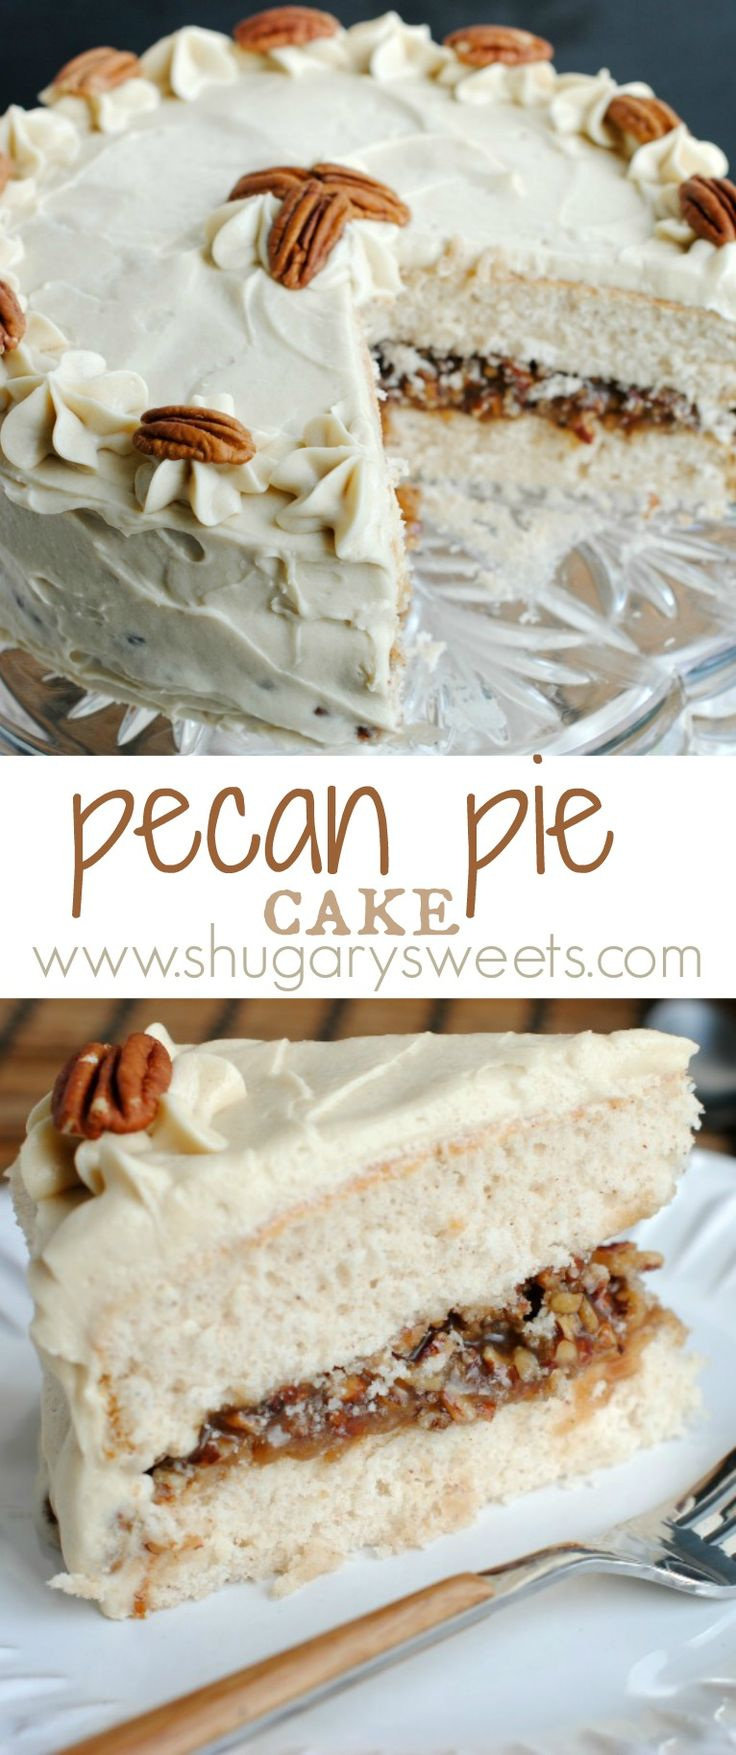 Pecan Pie Cake: double layer spice cake, from scratch, with a pecan pie filling and brown sugar frosting! This is a must have dessert!!!